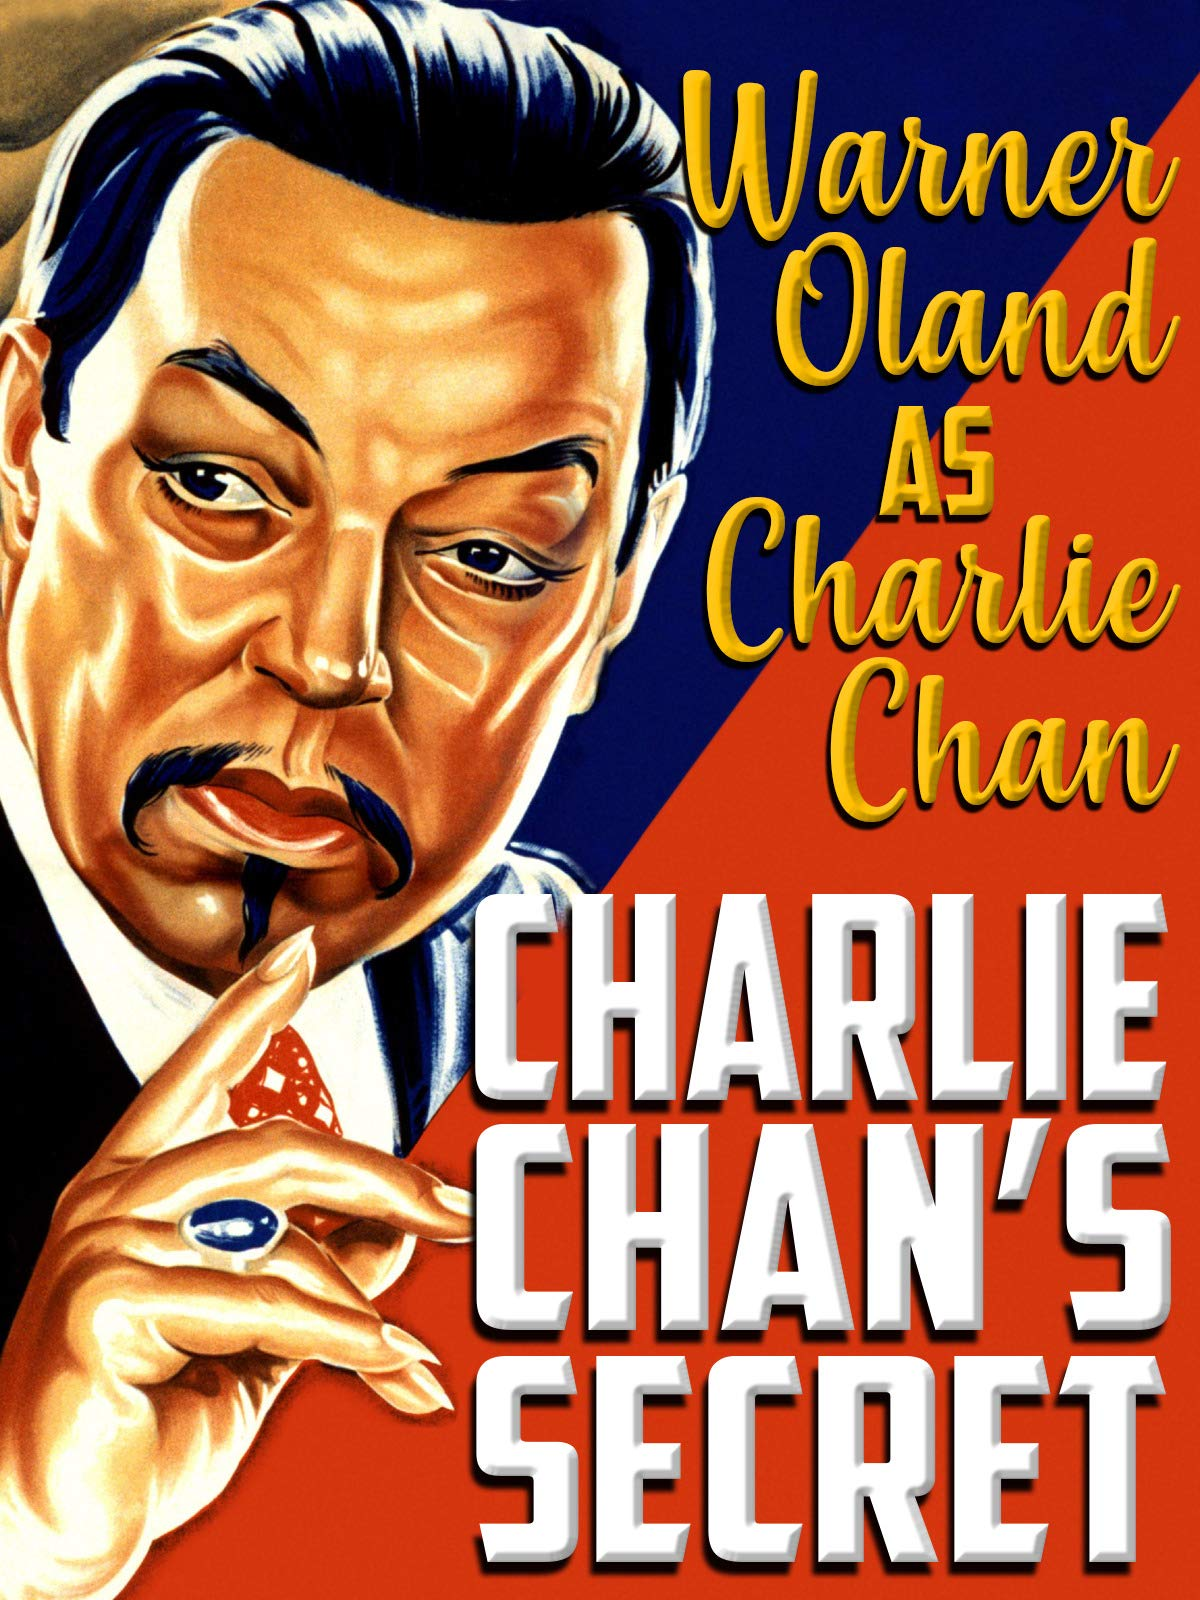 Charlie Chan's Secret - Warner Oland as Charile Chan